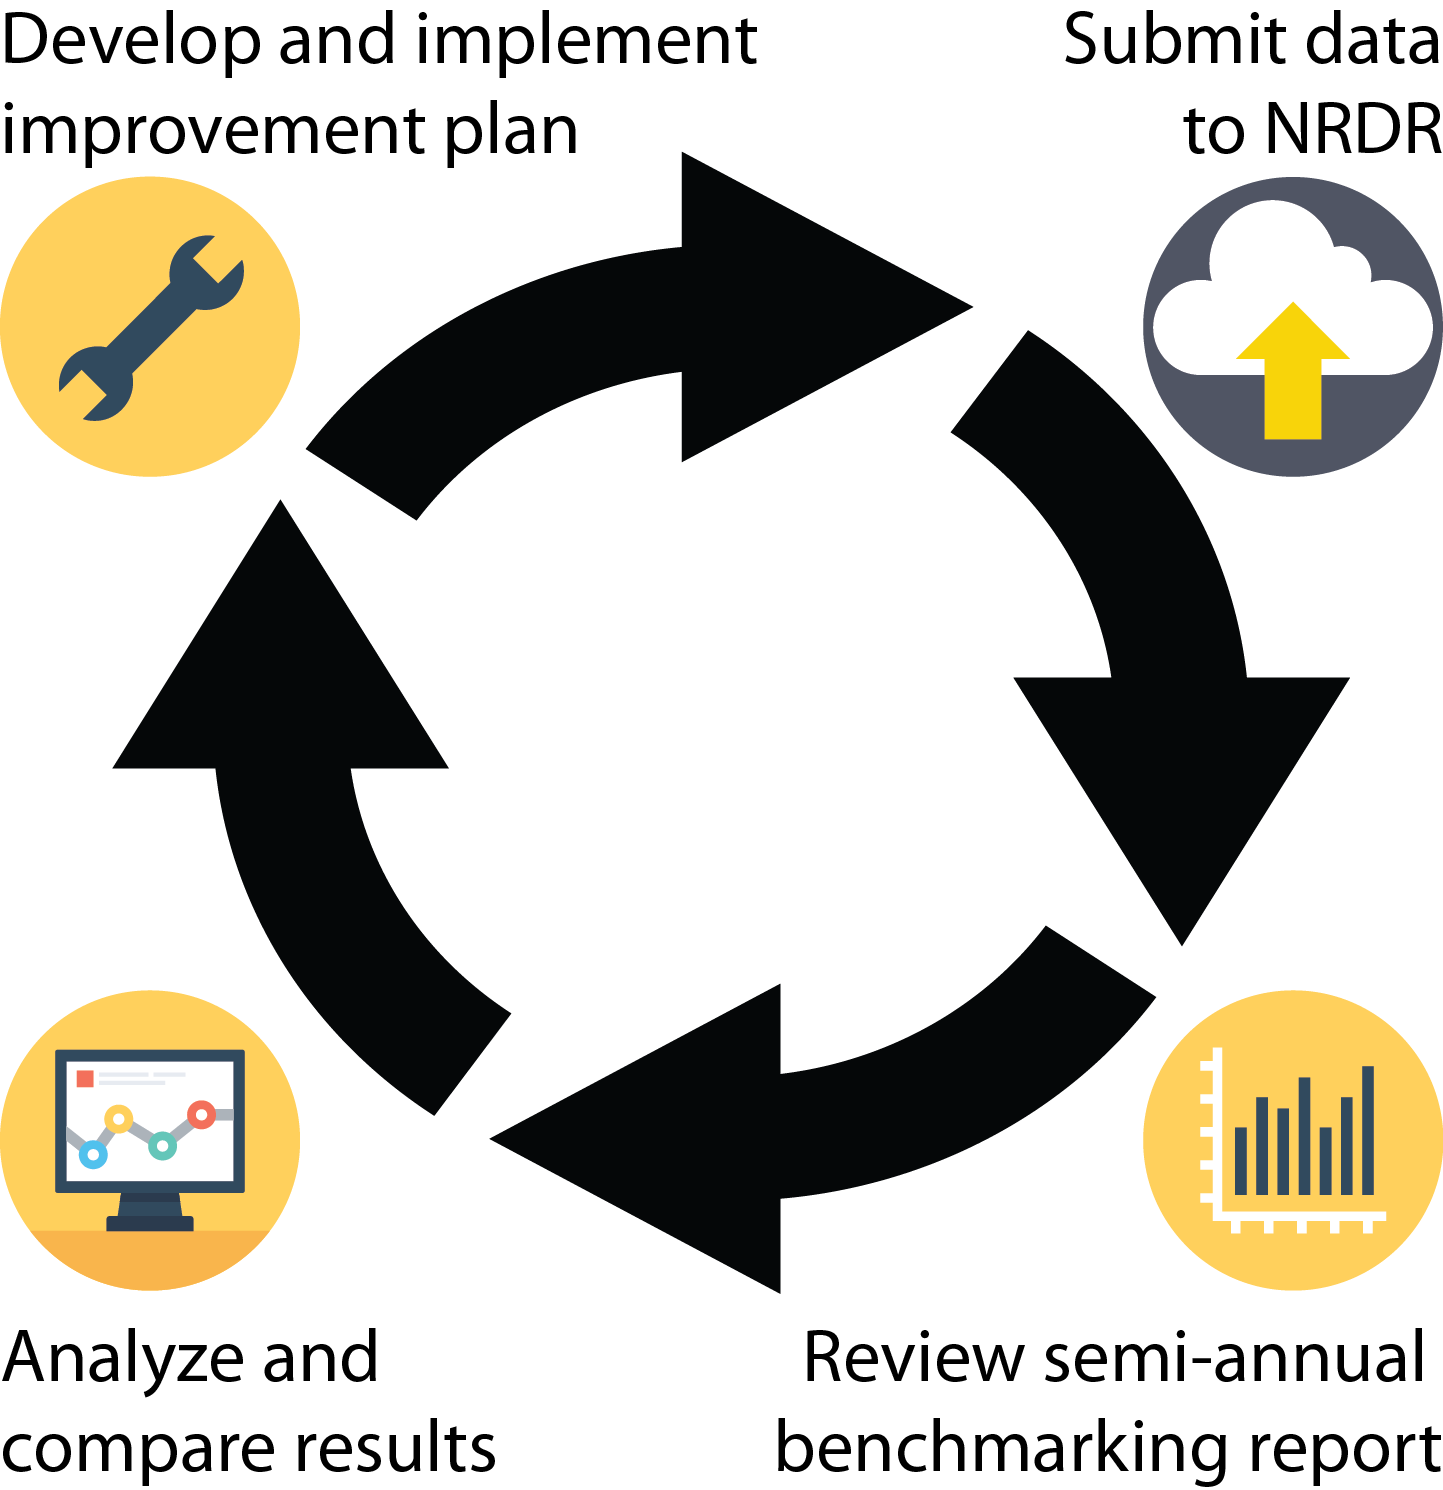 NRDR Quality Feedback Loop